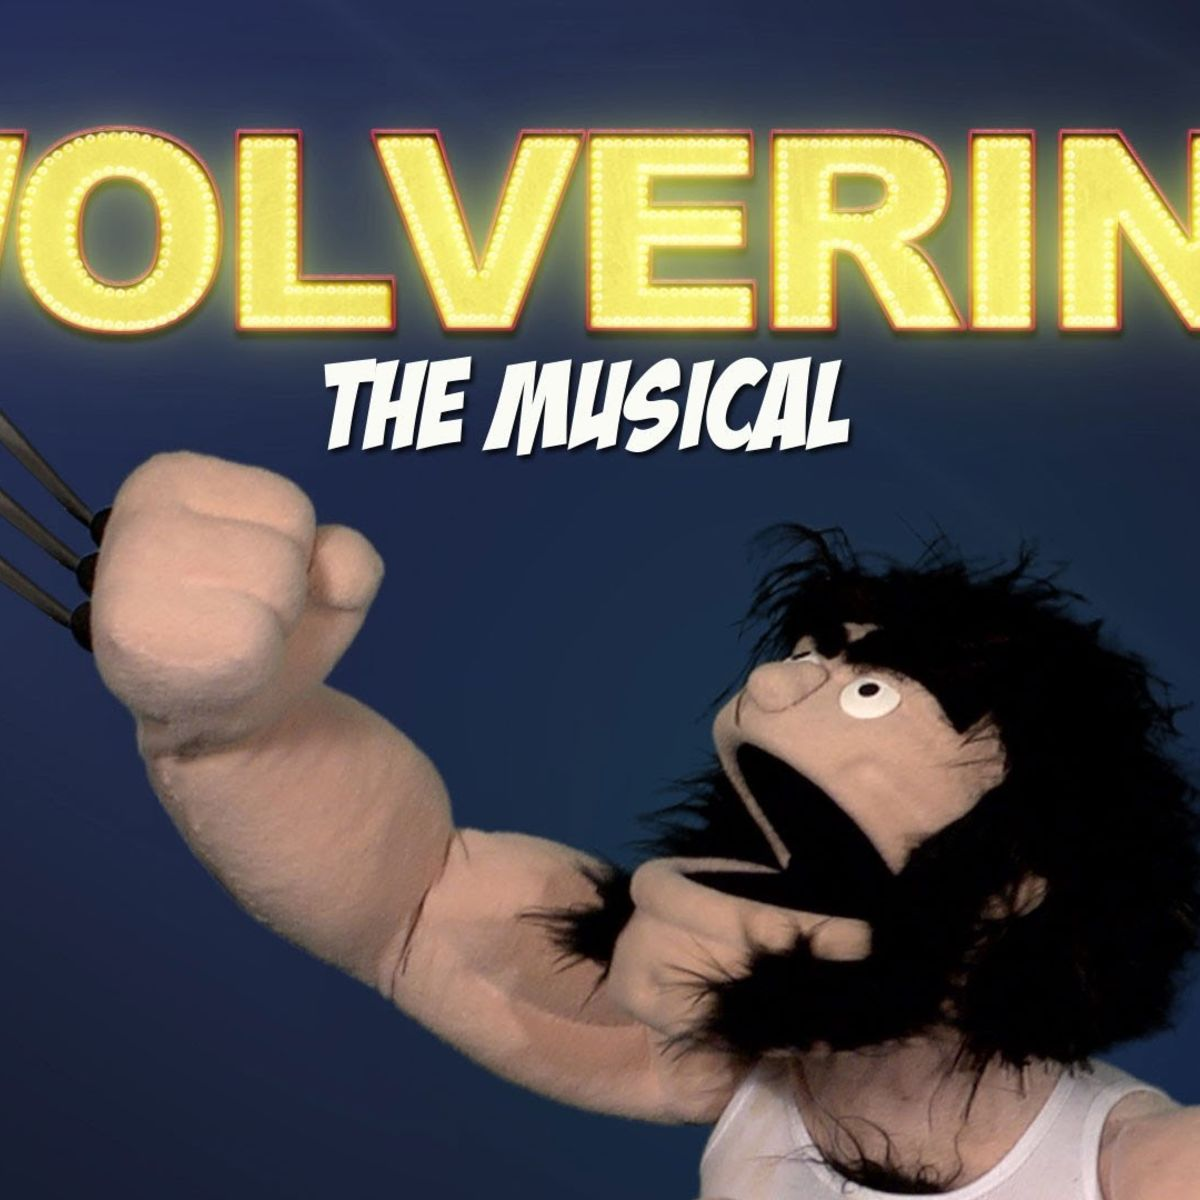 wolverine-the-musical-by-glove-and-boots.jpg